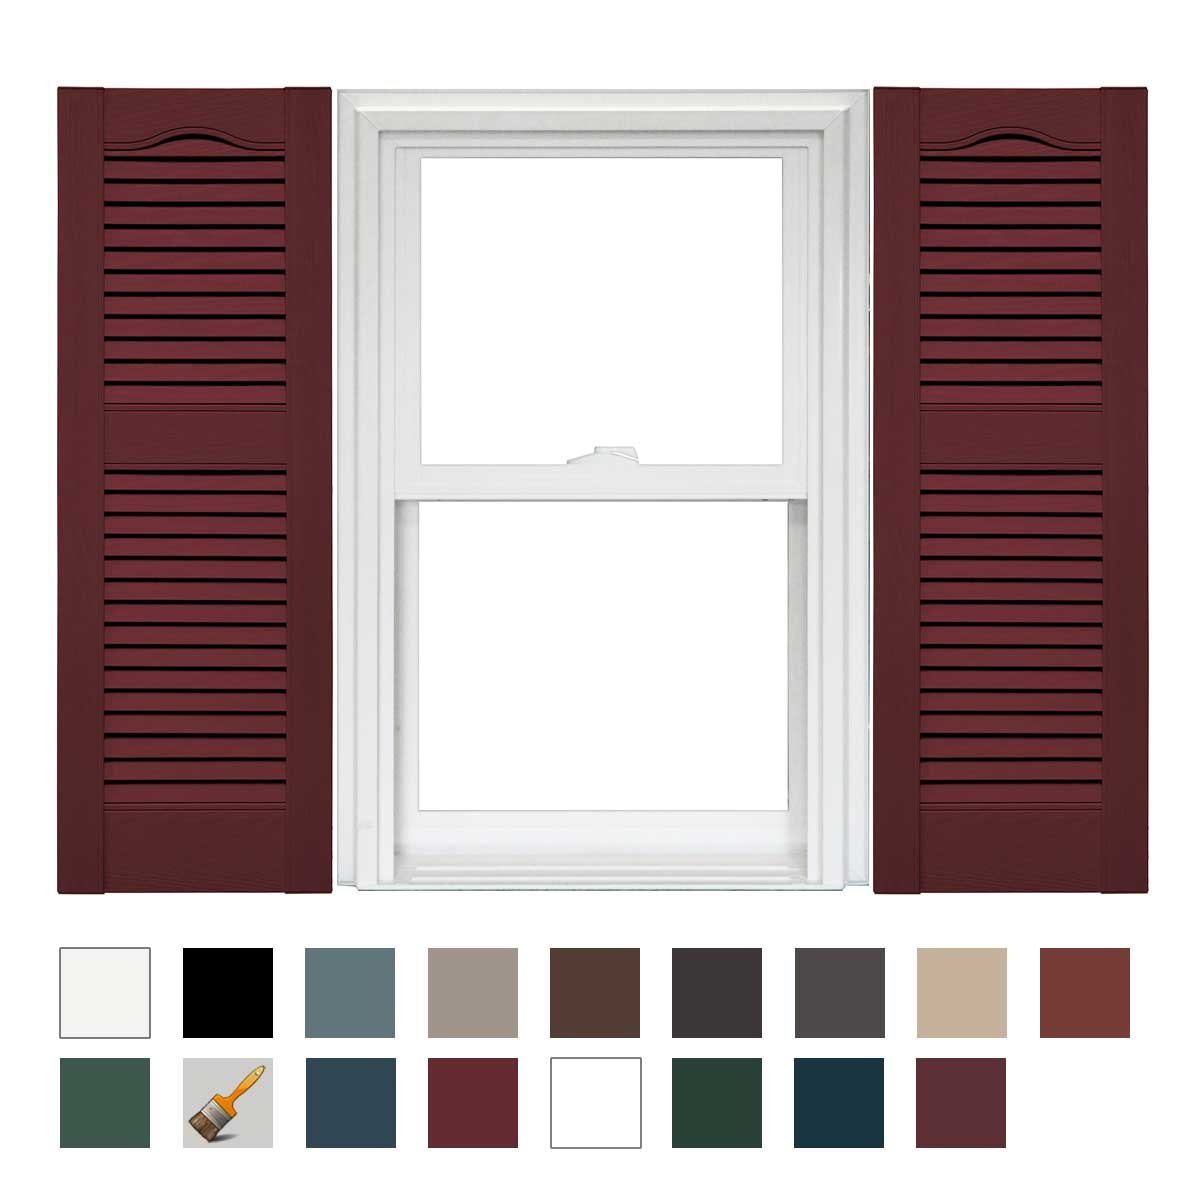 Mid America Cathedral Open Louver Vinyl Standard Shutter (1 Pair) - 12 x 25 078 Wineberry by Mid America